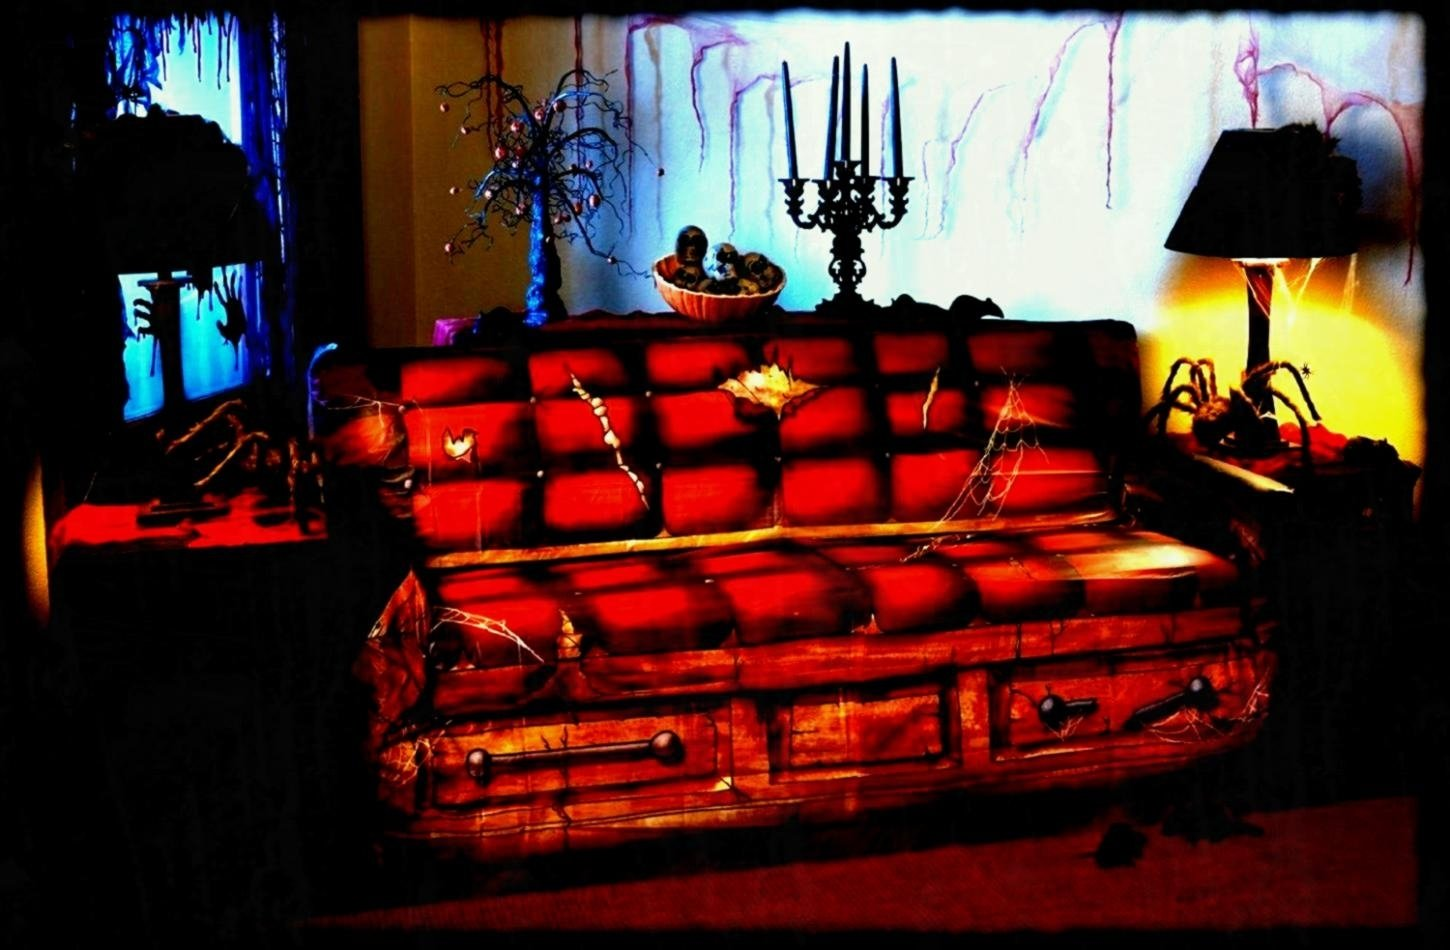 10 Stunning Scary Haunted House Room Ideas peaceful inspiration ideas halloween haunted house decoration ideas 1 2021